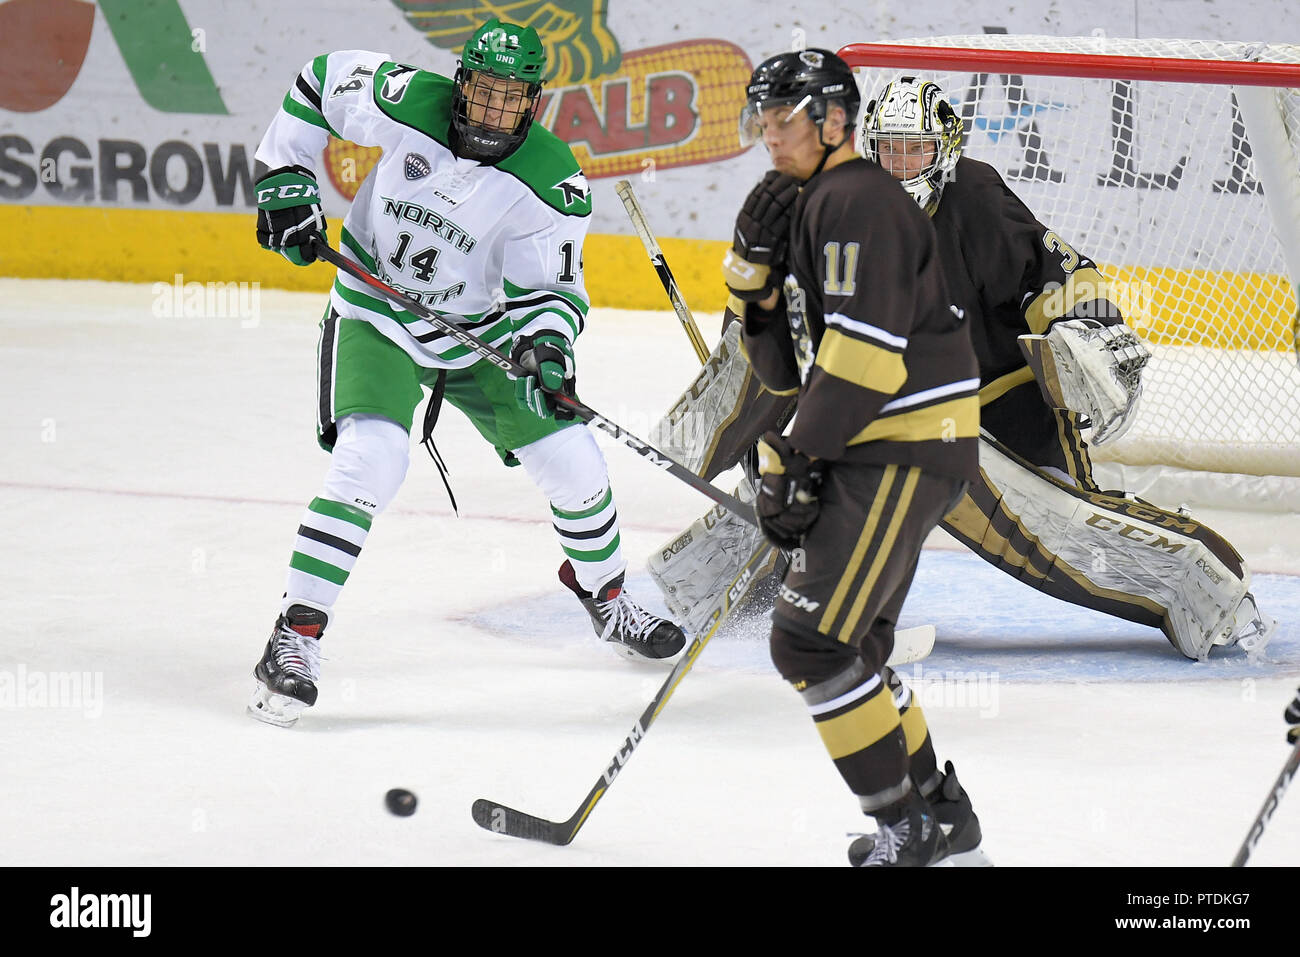 October 6, 2018 North Dakota Fighting Hawks forward Jasper Weatherby (14) watches a shot as it passes Manitoba Bisons defenseman Mitchell Dyck (11) on it's way to Manitoba Bisons goaltender Byron Spriggs (35) in the second period of an exhibition men's college hockey game between the Manitoba Bisons and the University of North Dakota Fighting Hawks at Ralph Engelstad Arena in Grand Forks. North Dakota won 3-2 in overtime. Photo by Russell Hons/CSM Stock Photo